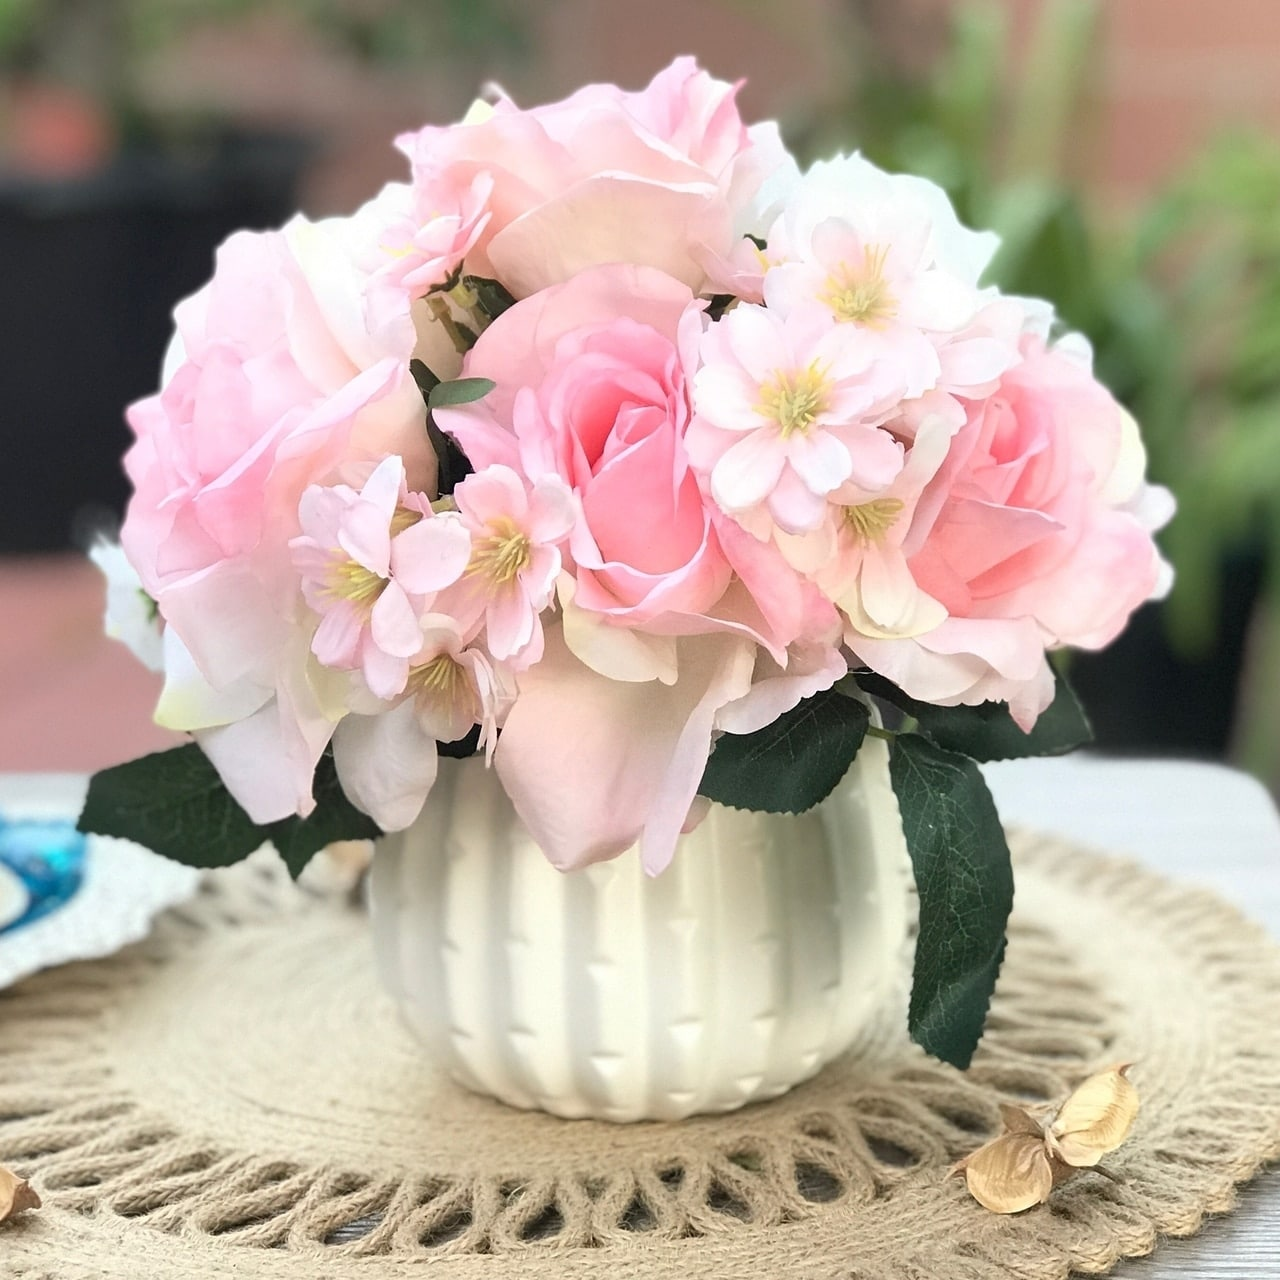 Enova Home Pink Cream Open Rose And Mixed Silk Artificial Flower Arrangement With White Ceramic Vase Pink And Cream Overstock 27869337